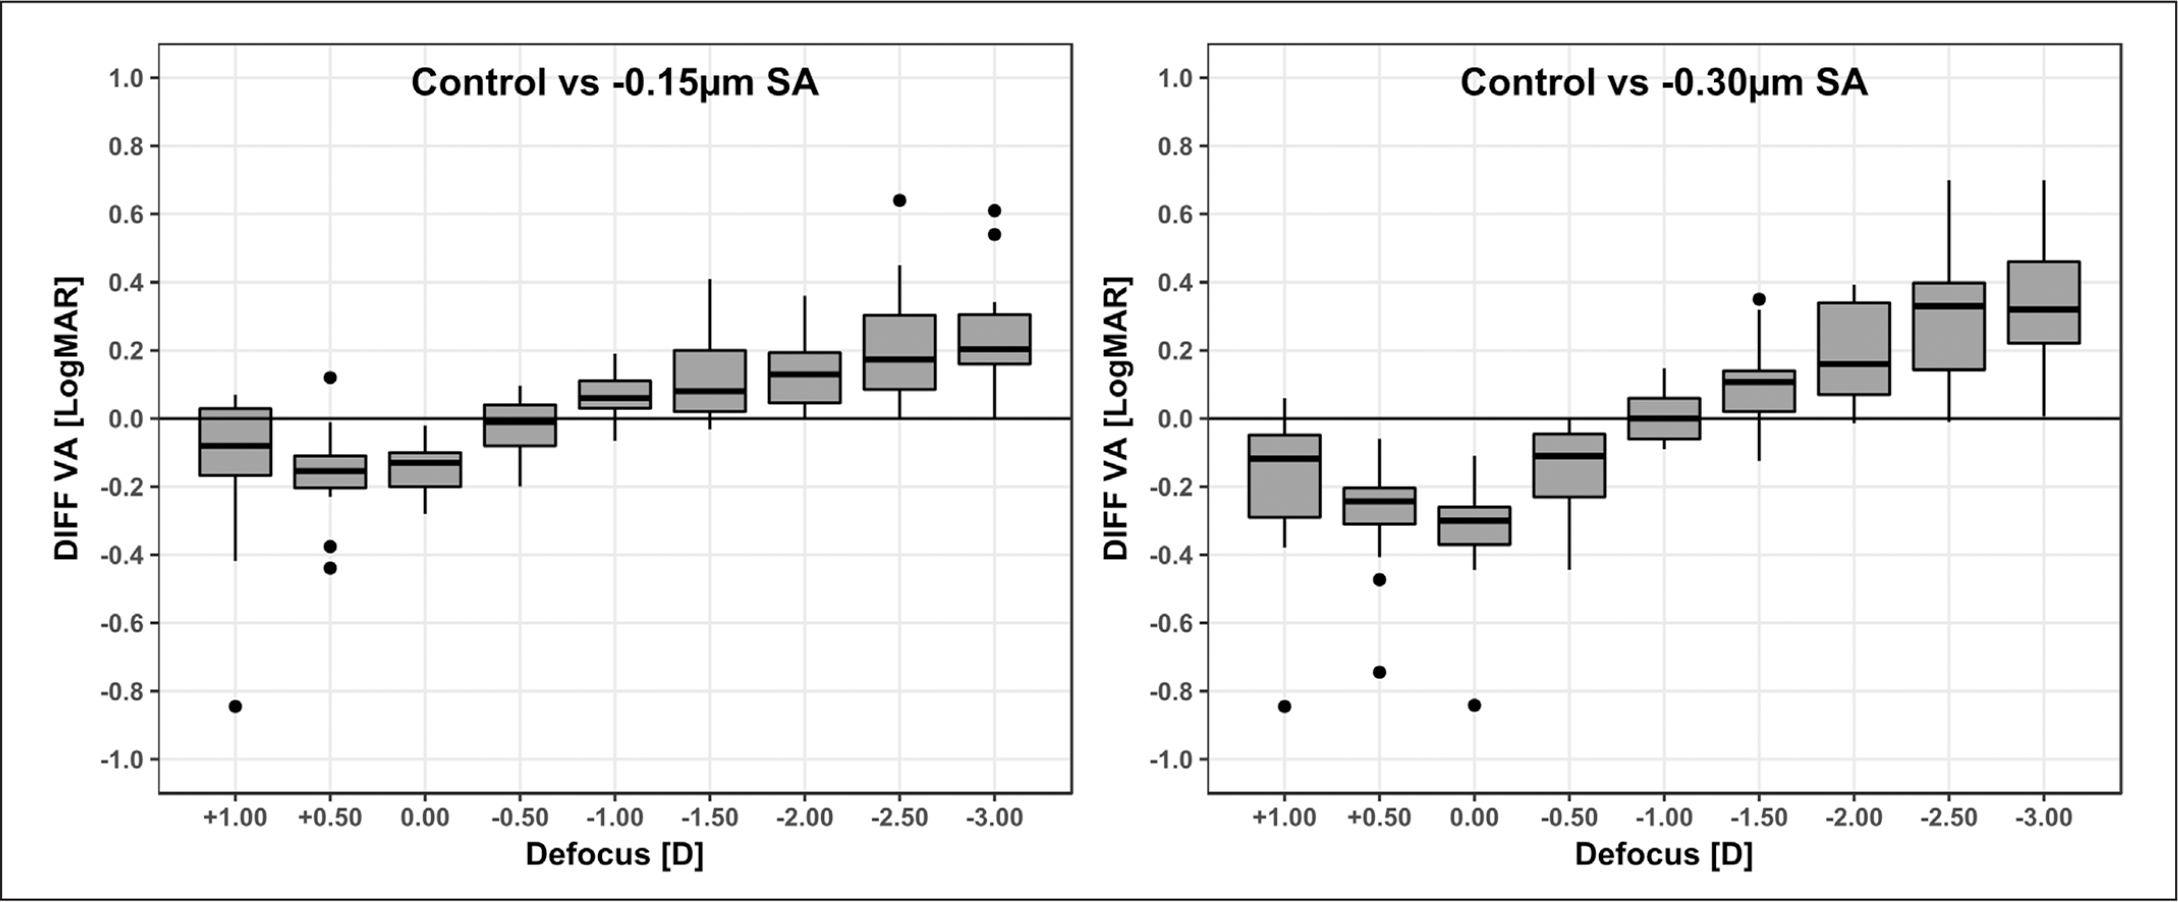 Boxplot of the differences of visual acuities (DIFF VA) in logMAR units between control (0 µm) and −0.15 µm conditions of spherical aberration (SA) and control and −0.30 µm conditions of SA as a function of defocus in diopters (D). In the box plots, the more negative boundary of the box indicates the 25th percentile, the black line within the box marks the median, and the more positive boundary of the box indicates the 75th percentile. Vertical lines above and below the box delimit the maximum and minimum values. Points above and below the box indicate outliers.